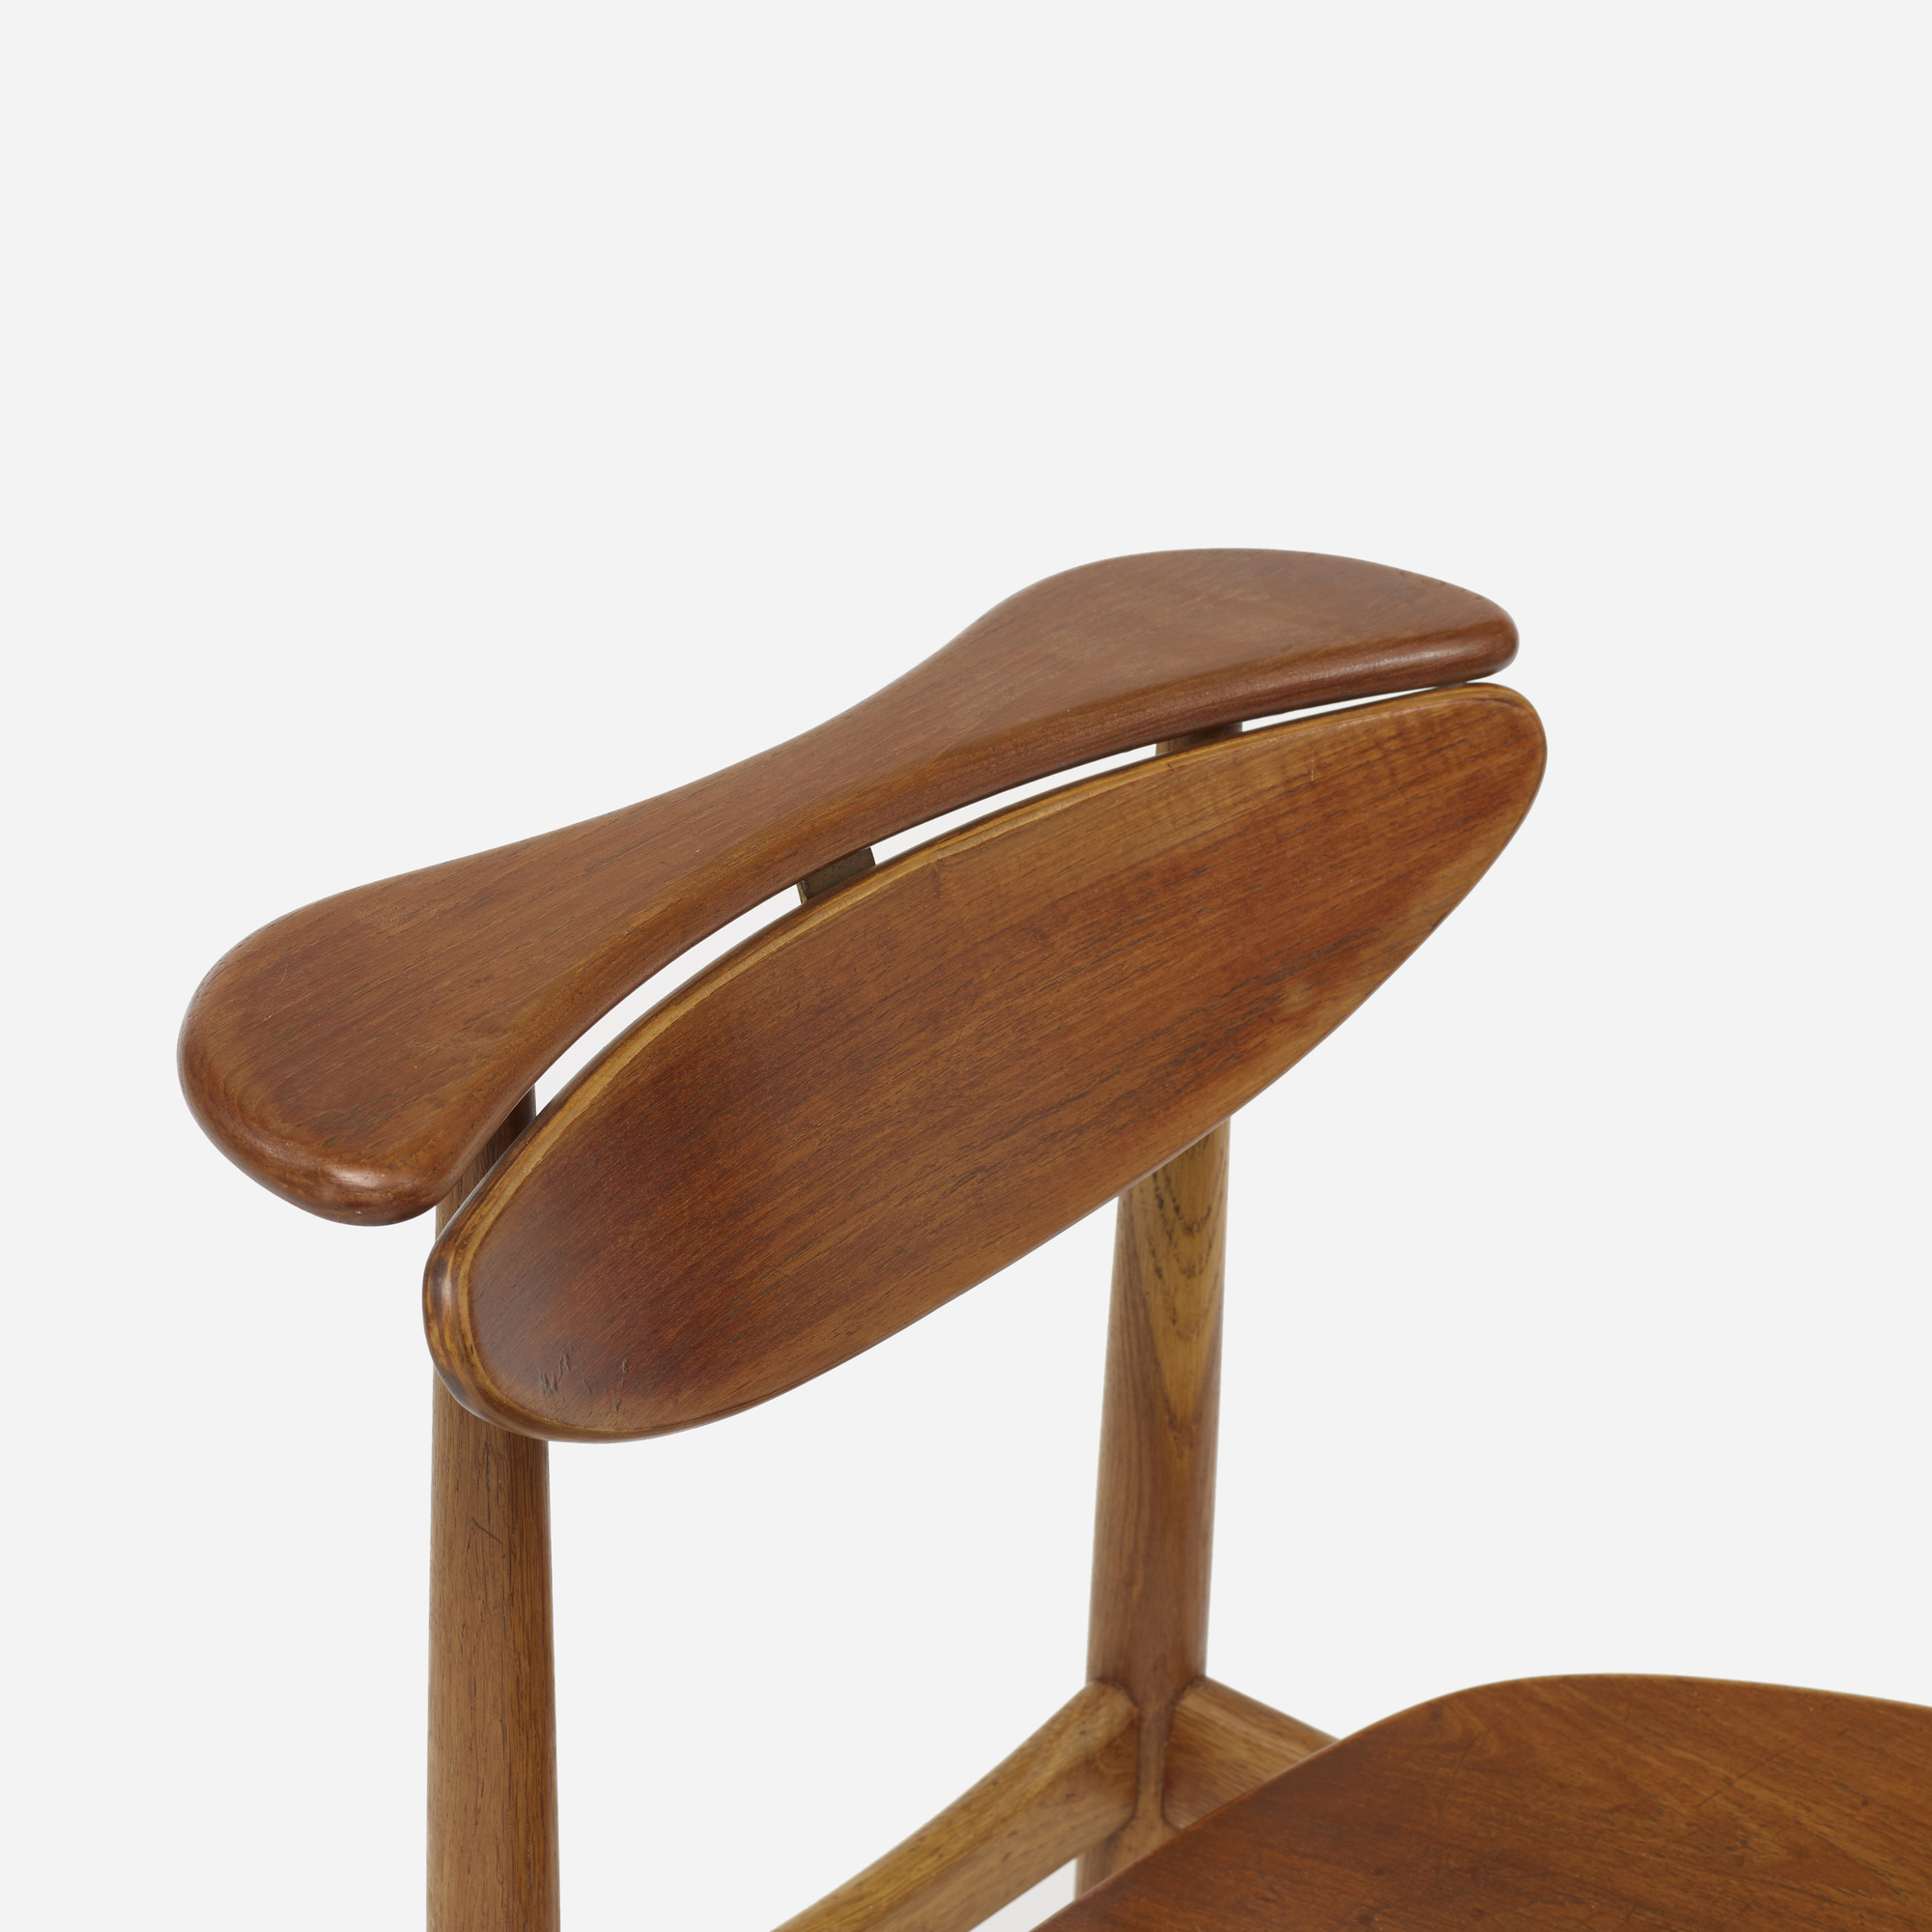 378: Finn Juhl / chairs, pair (3 of 4)